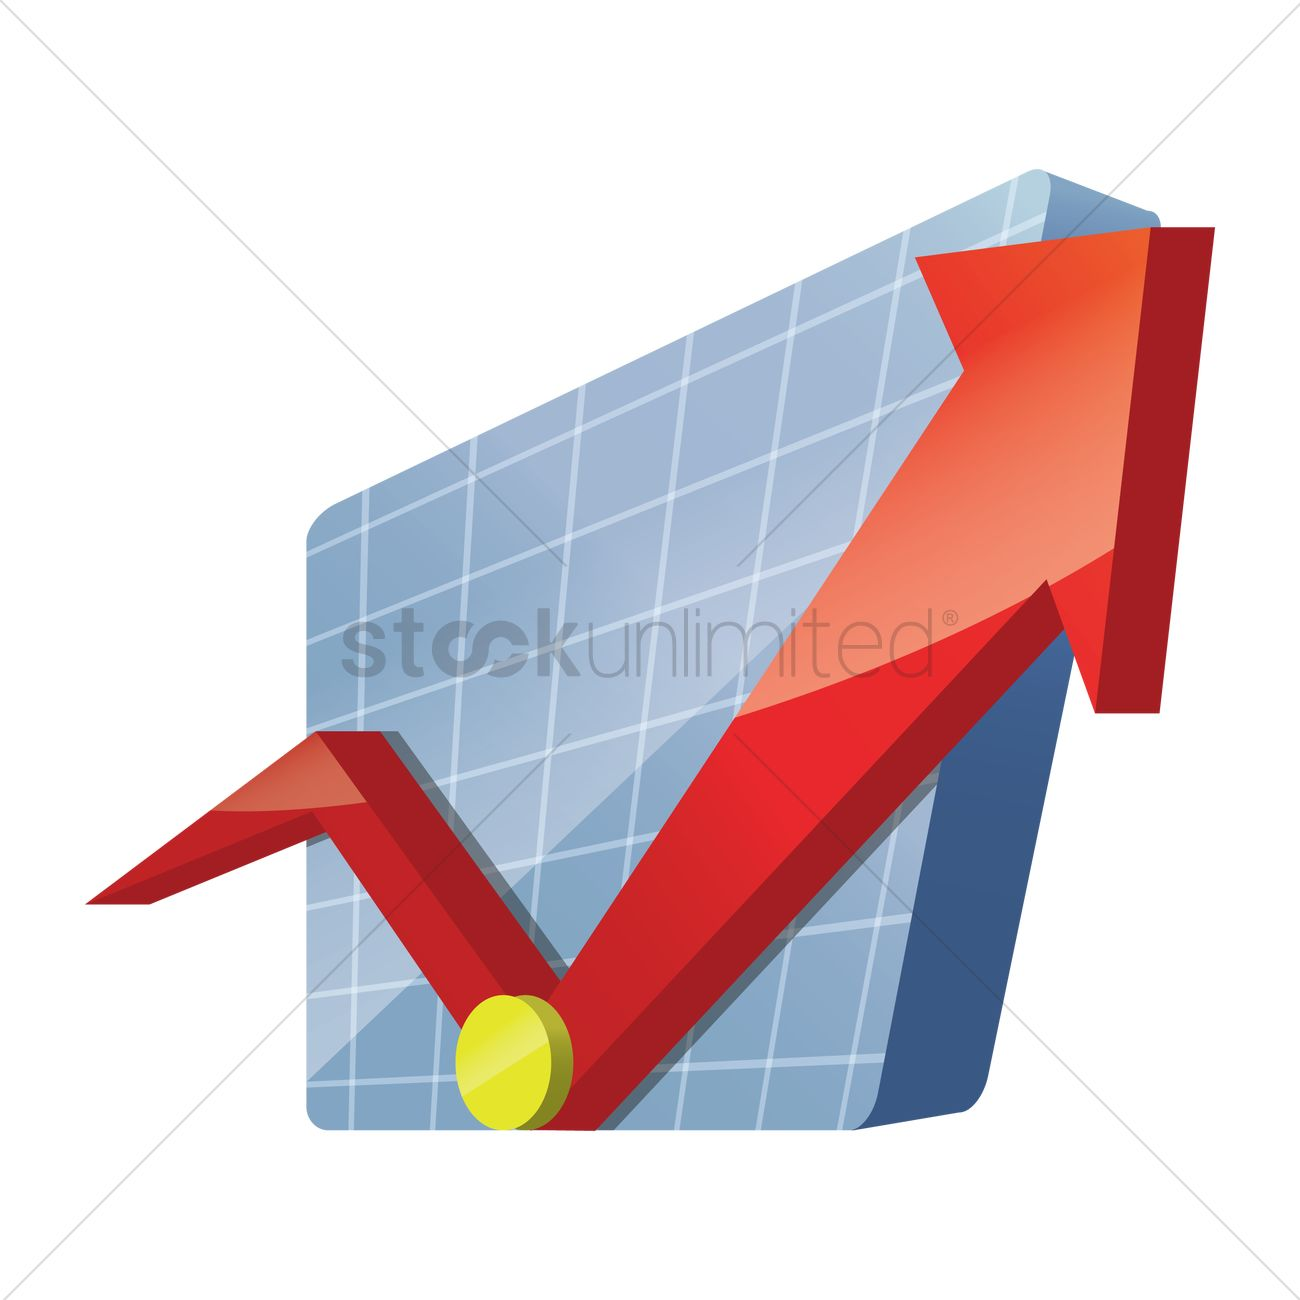 free graph vector image